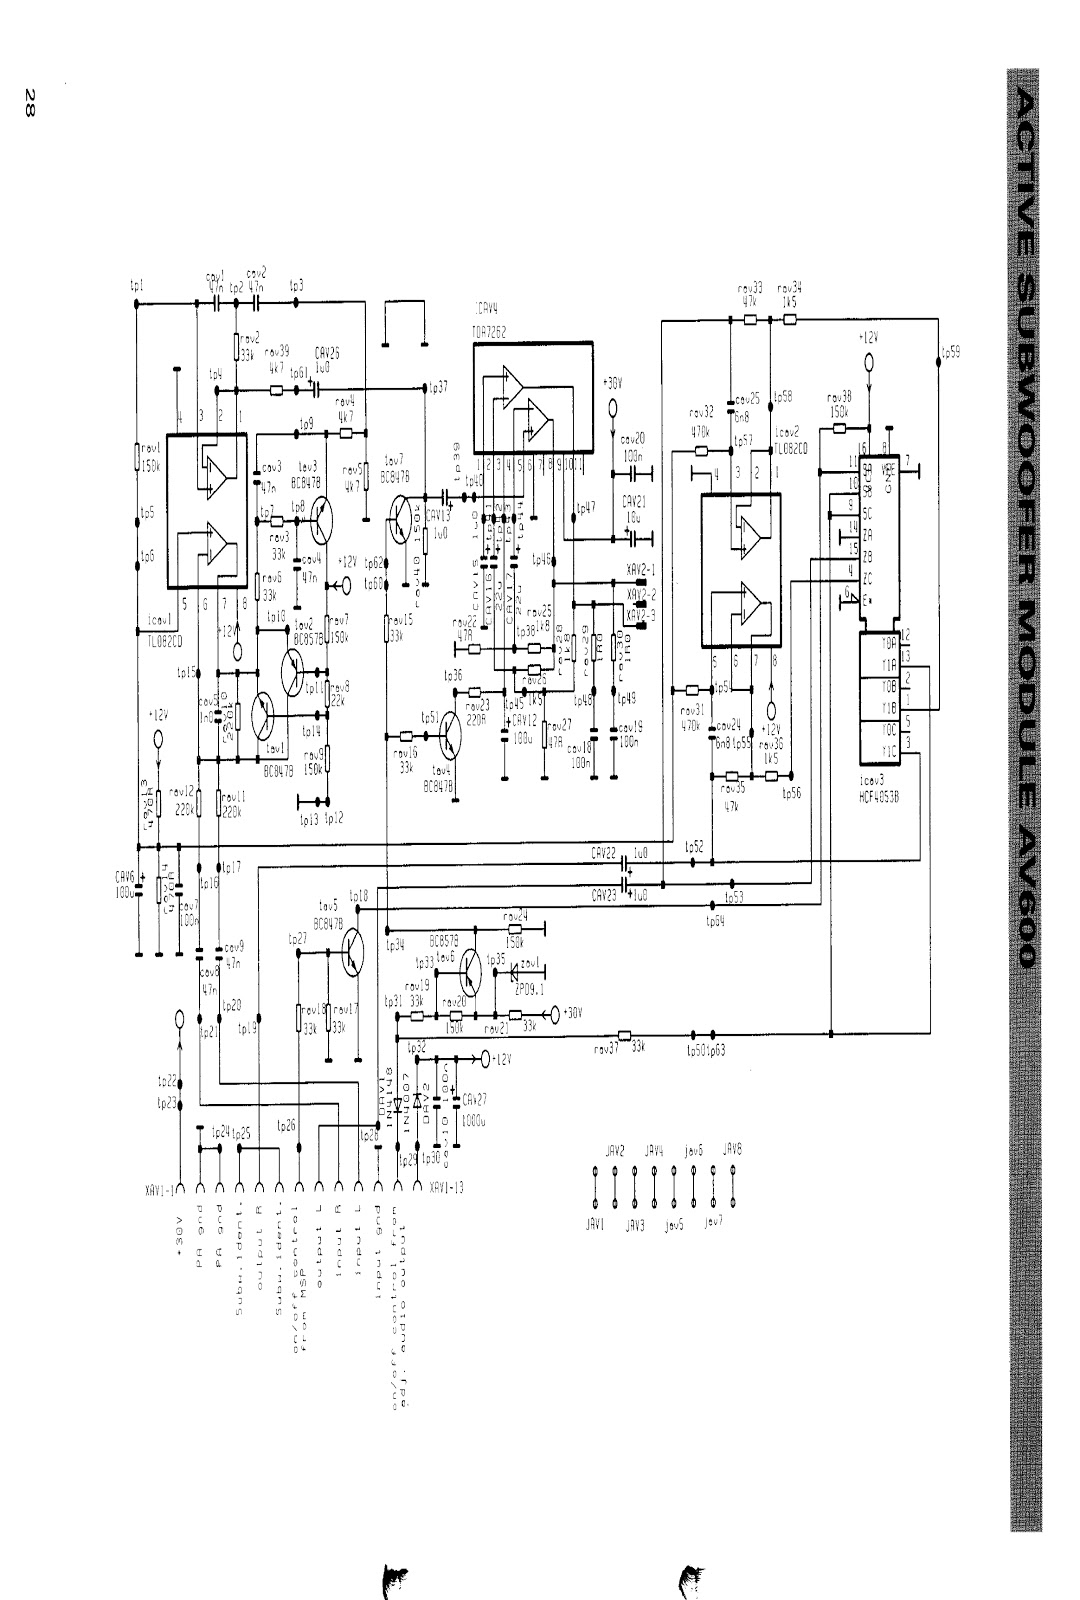 Nobel Tv Circuit Diagram Manual - Free Software And Shareware